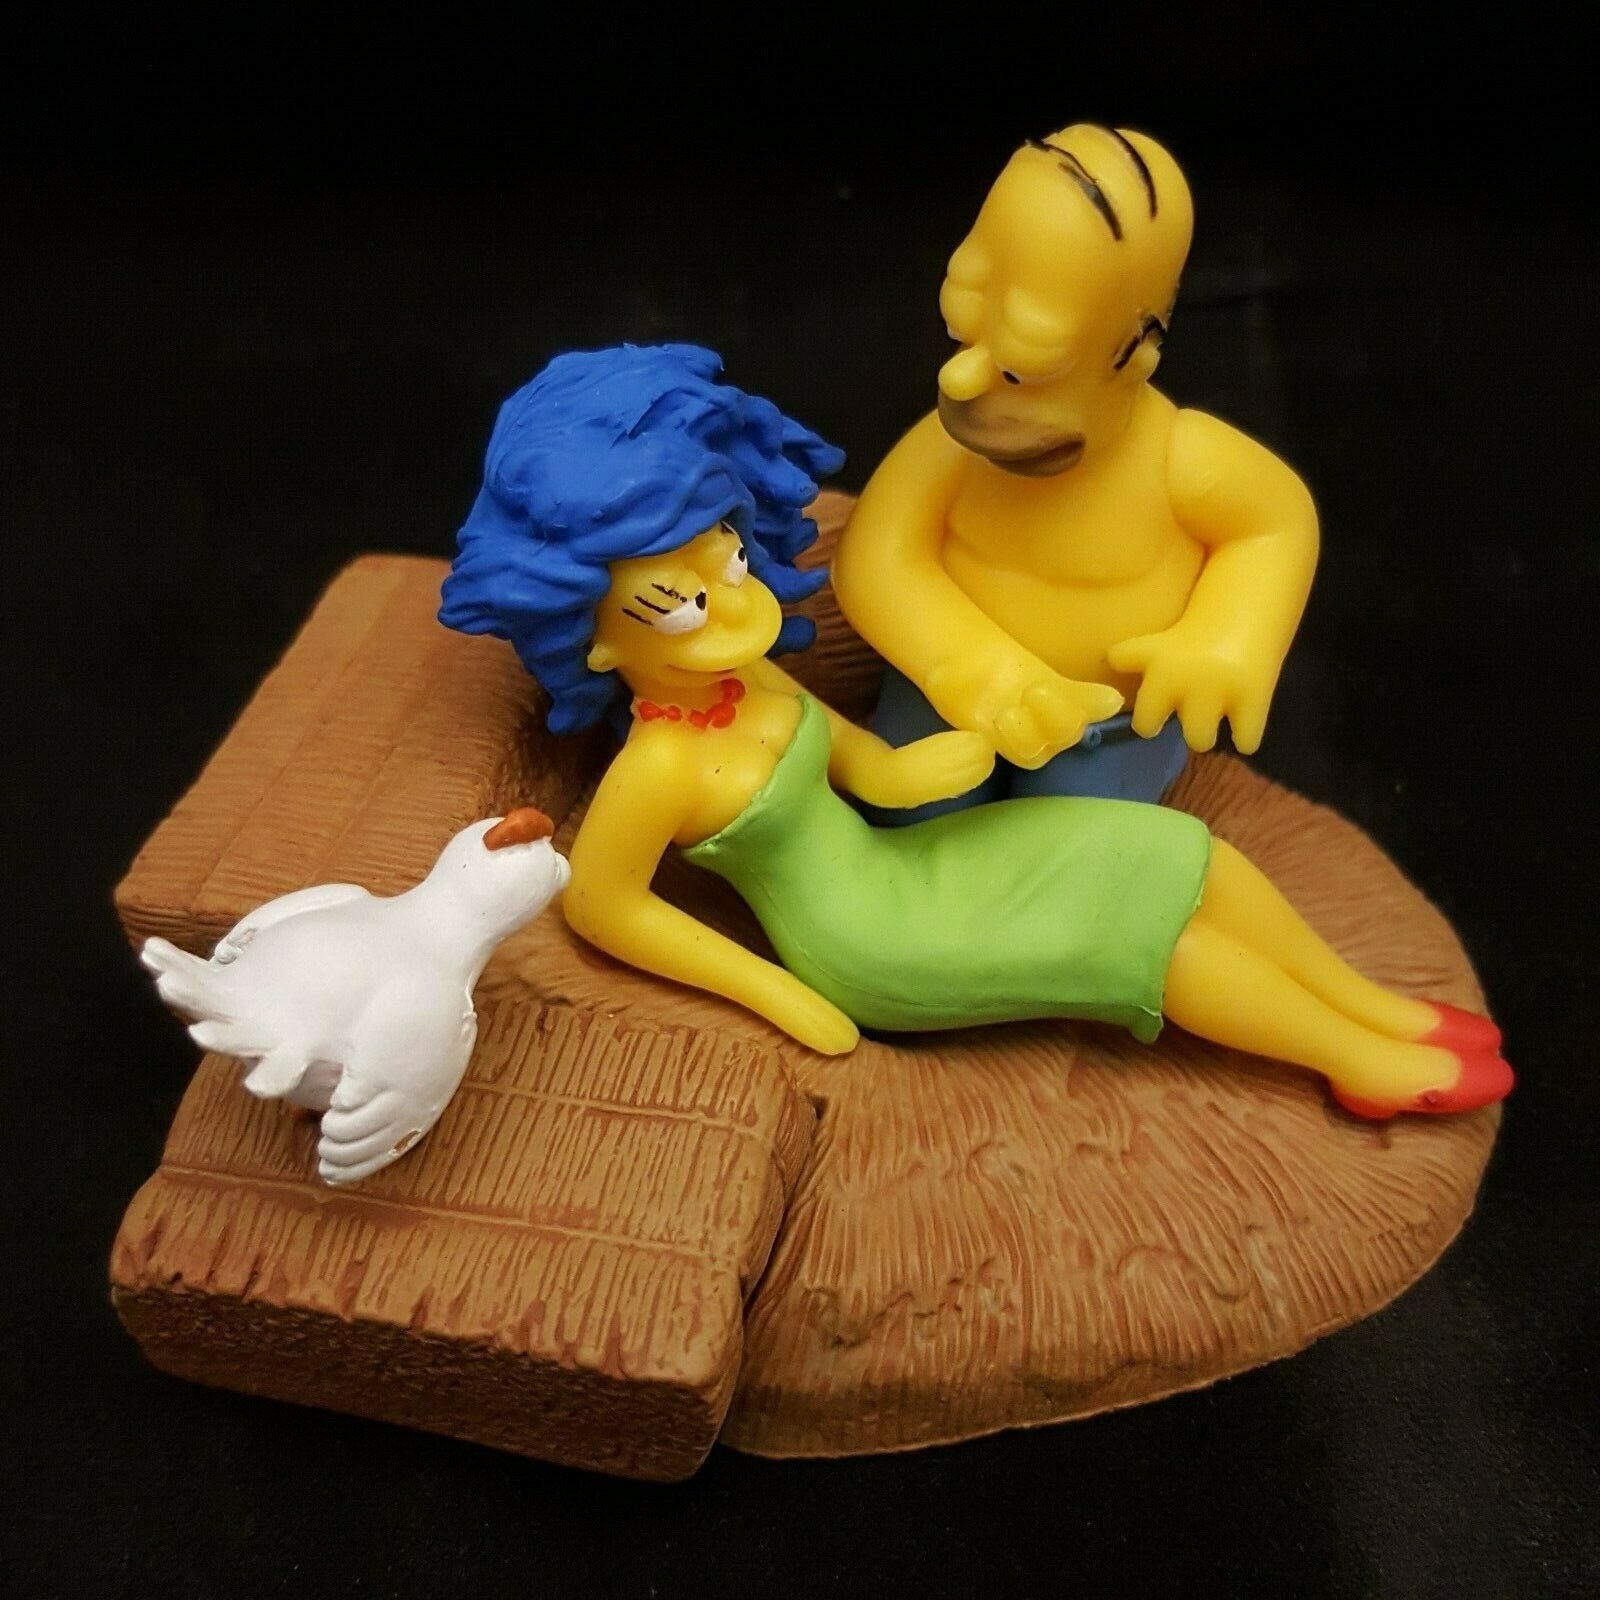 Micro-bust Gentle Giant THE SIMPSONS SERIES FIVE  Bust-Ups